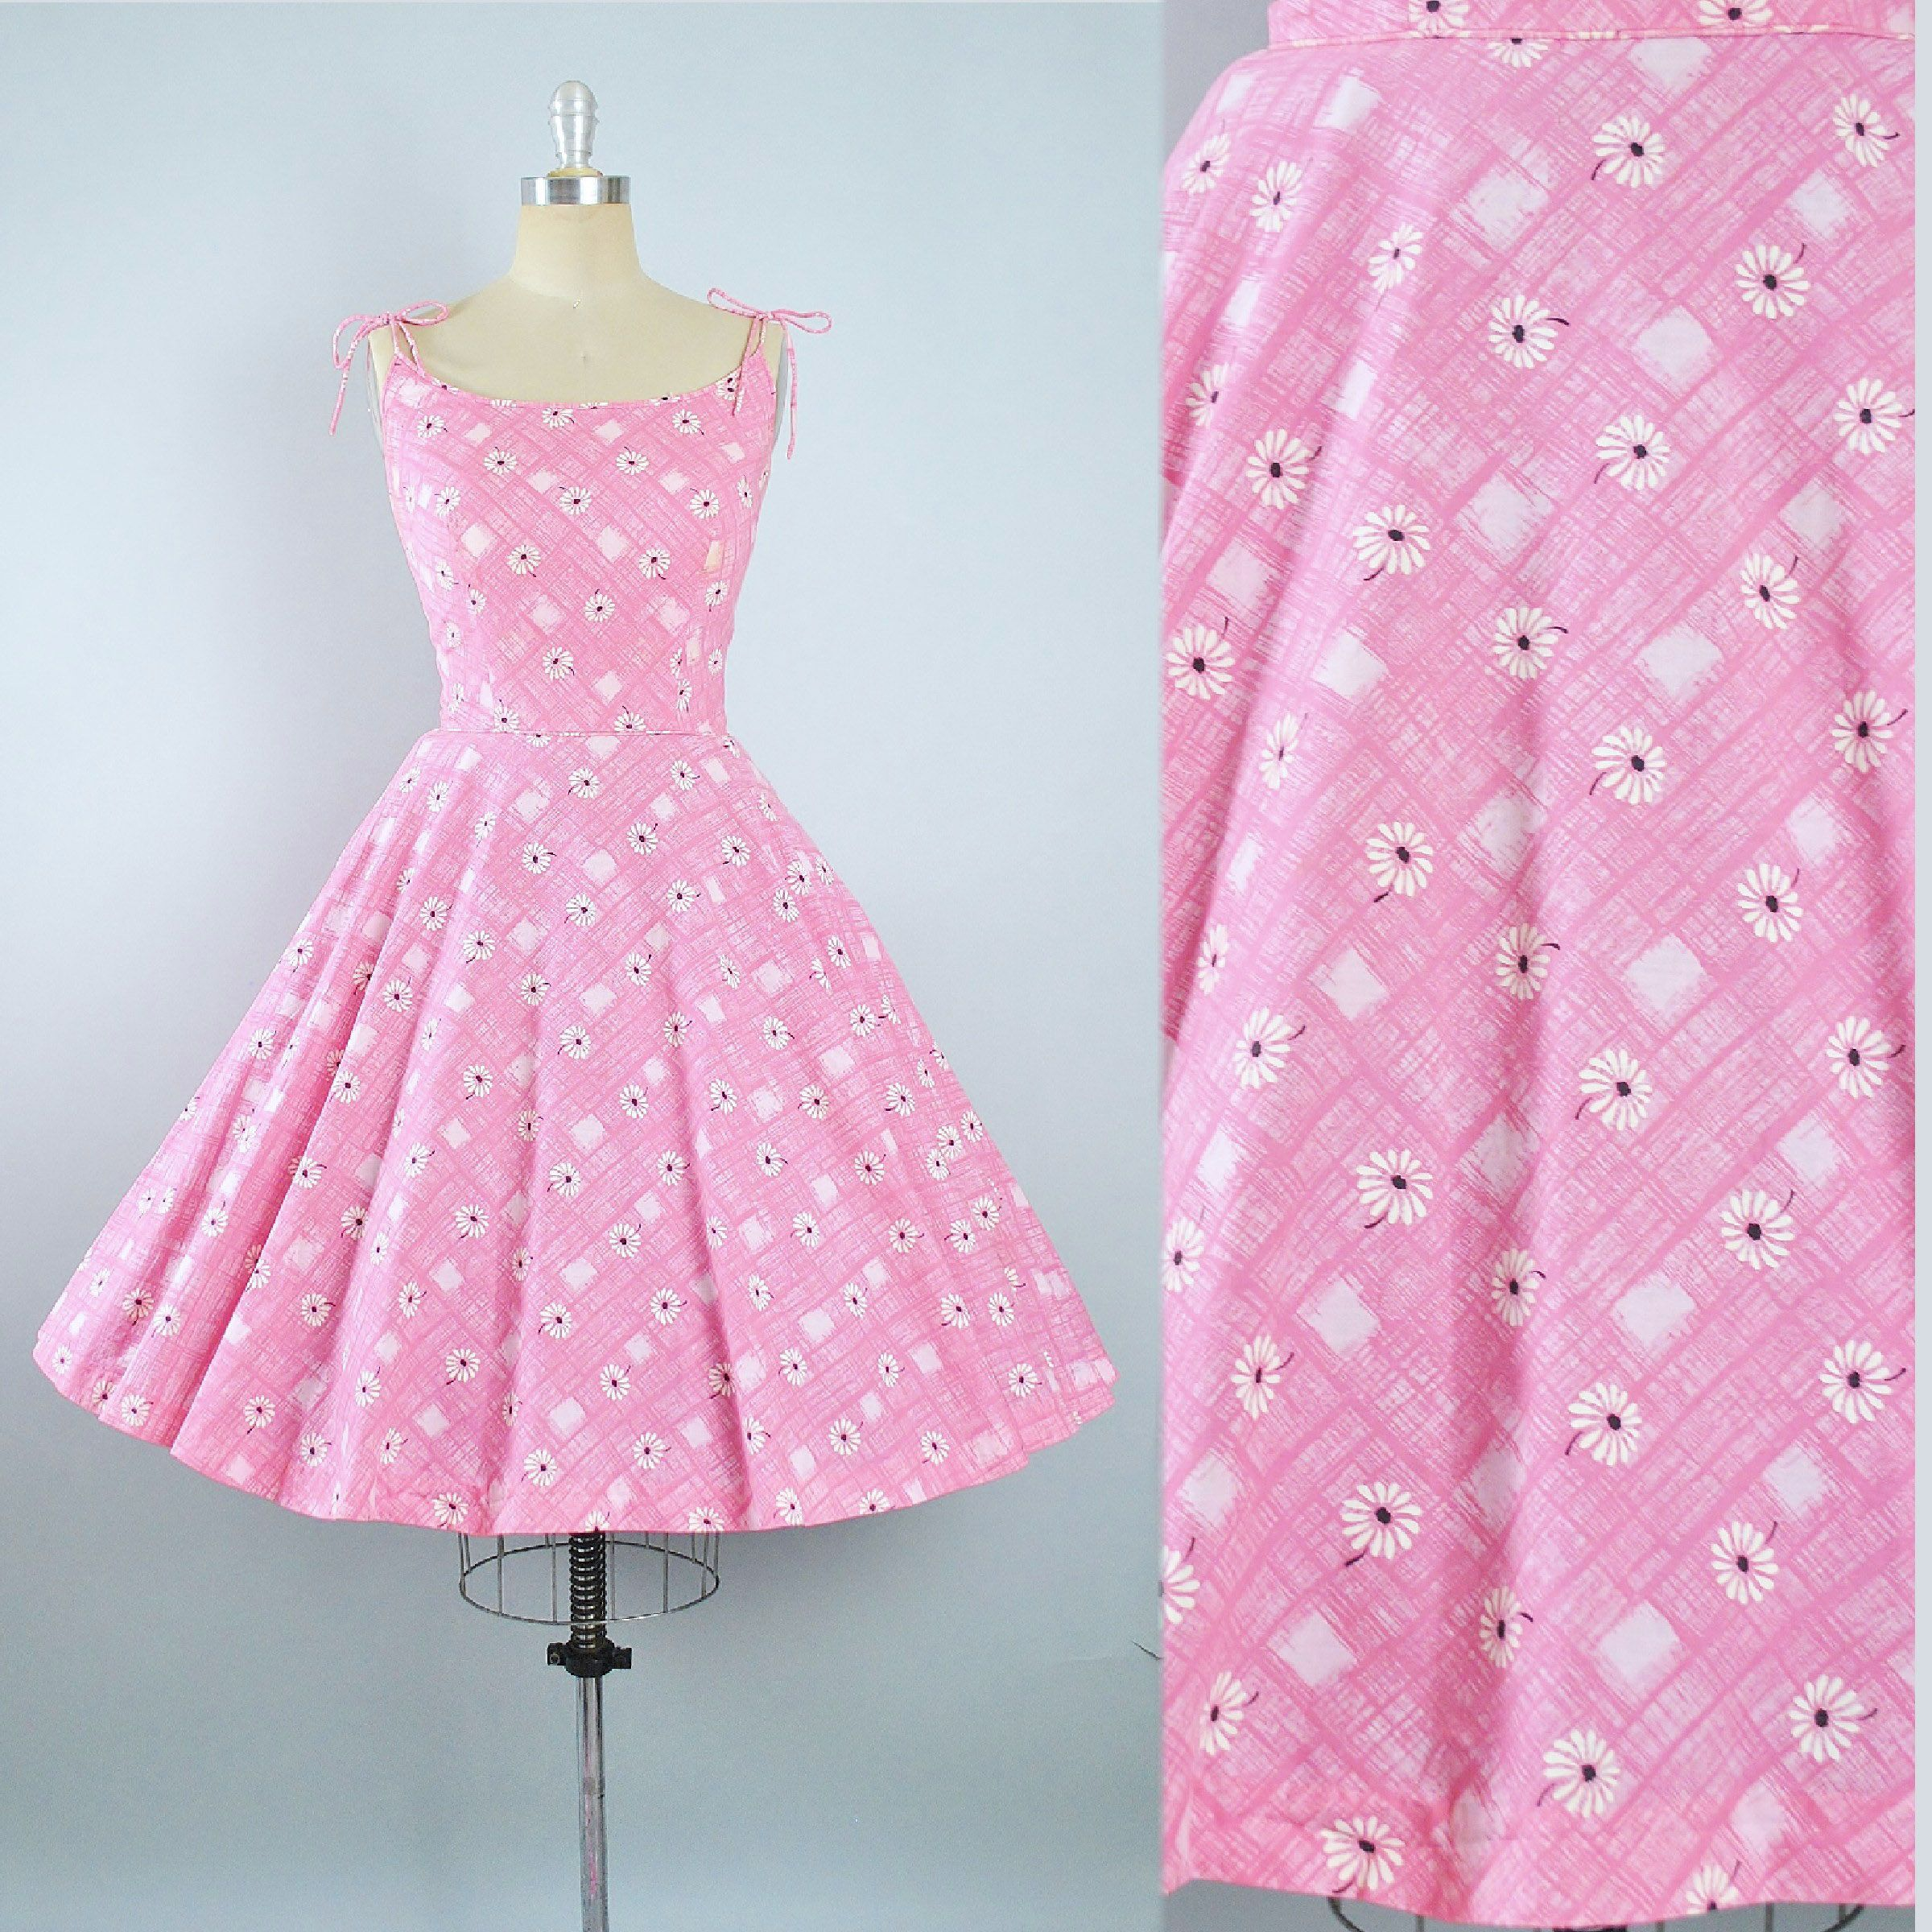 Vintage 1950s Tori Richard Dress / 50s Pink Cotton Hawaiian Sundress ...